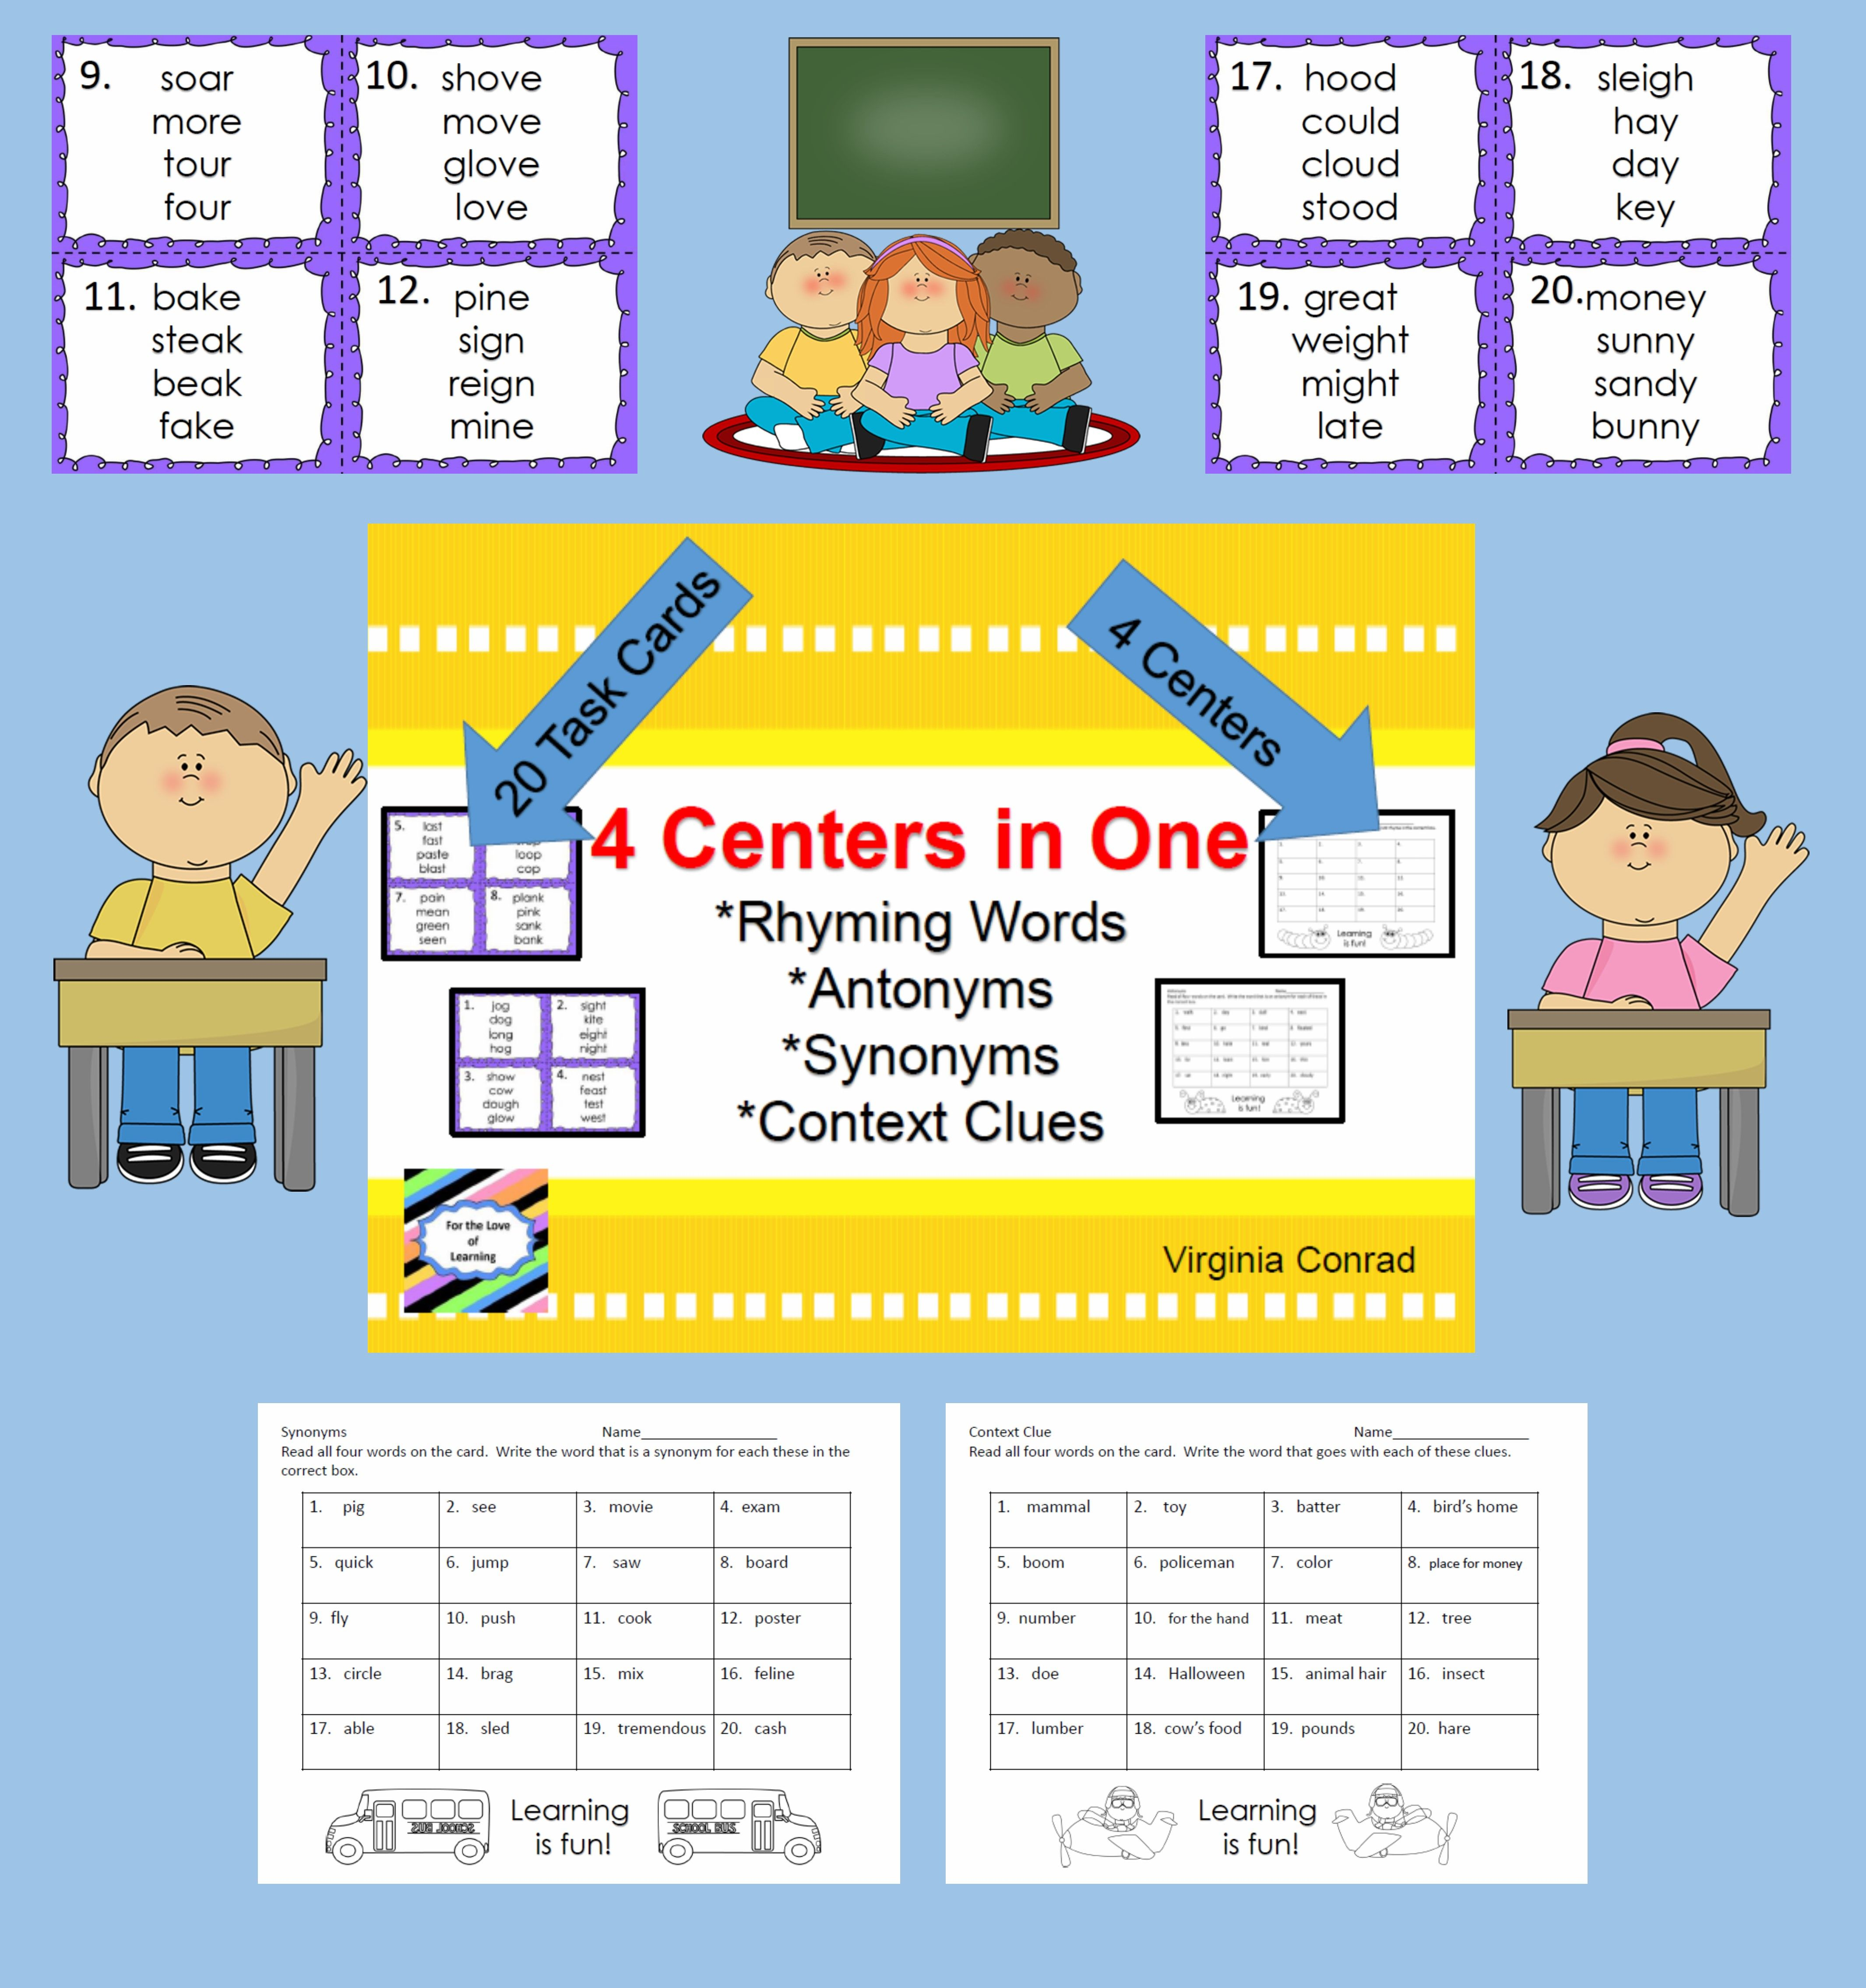 Rhyming Synonyms Antonyms And Context Clues